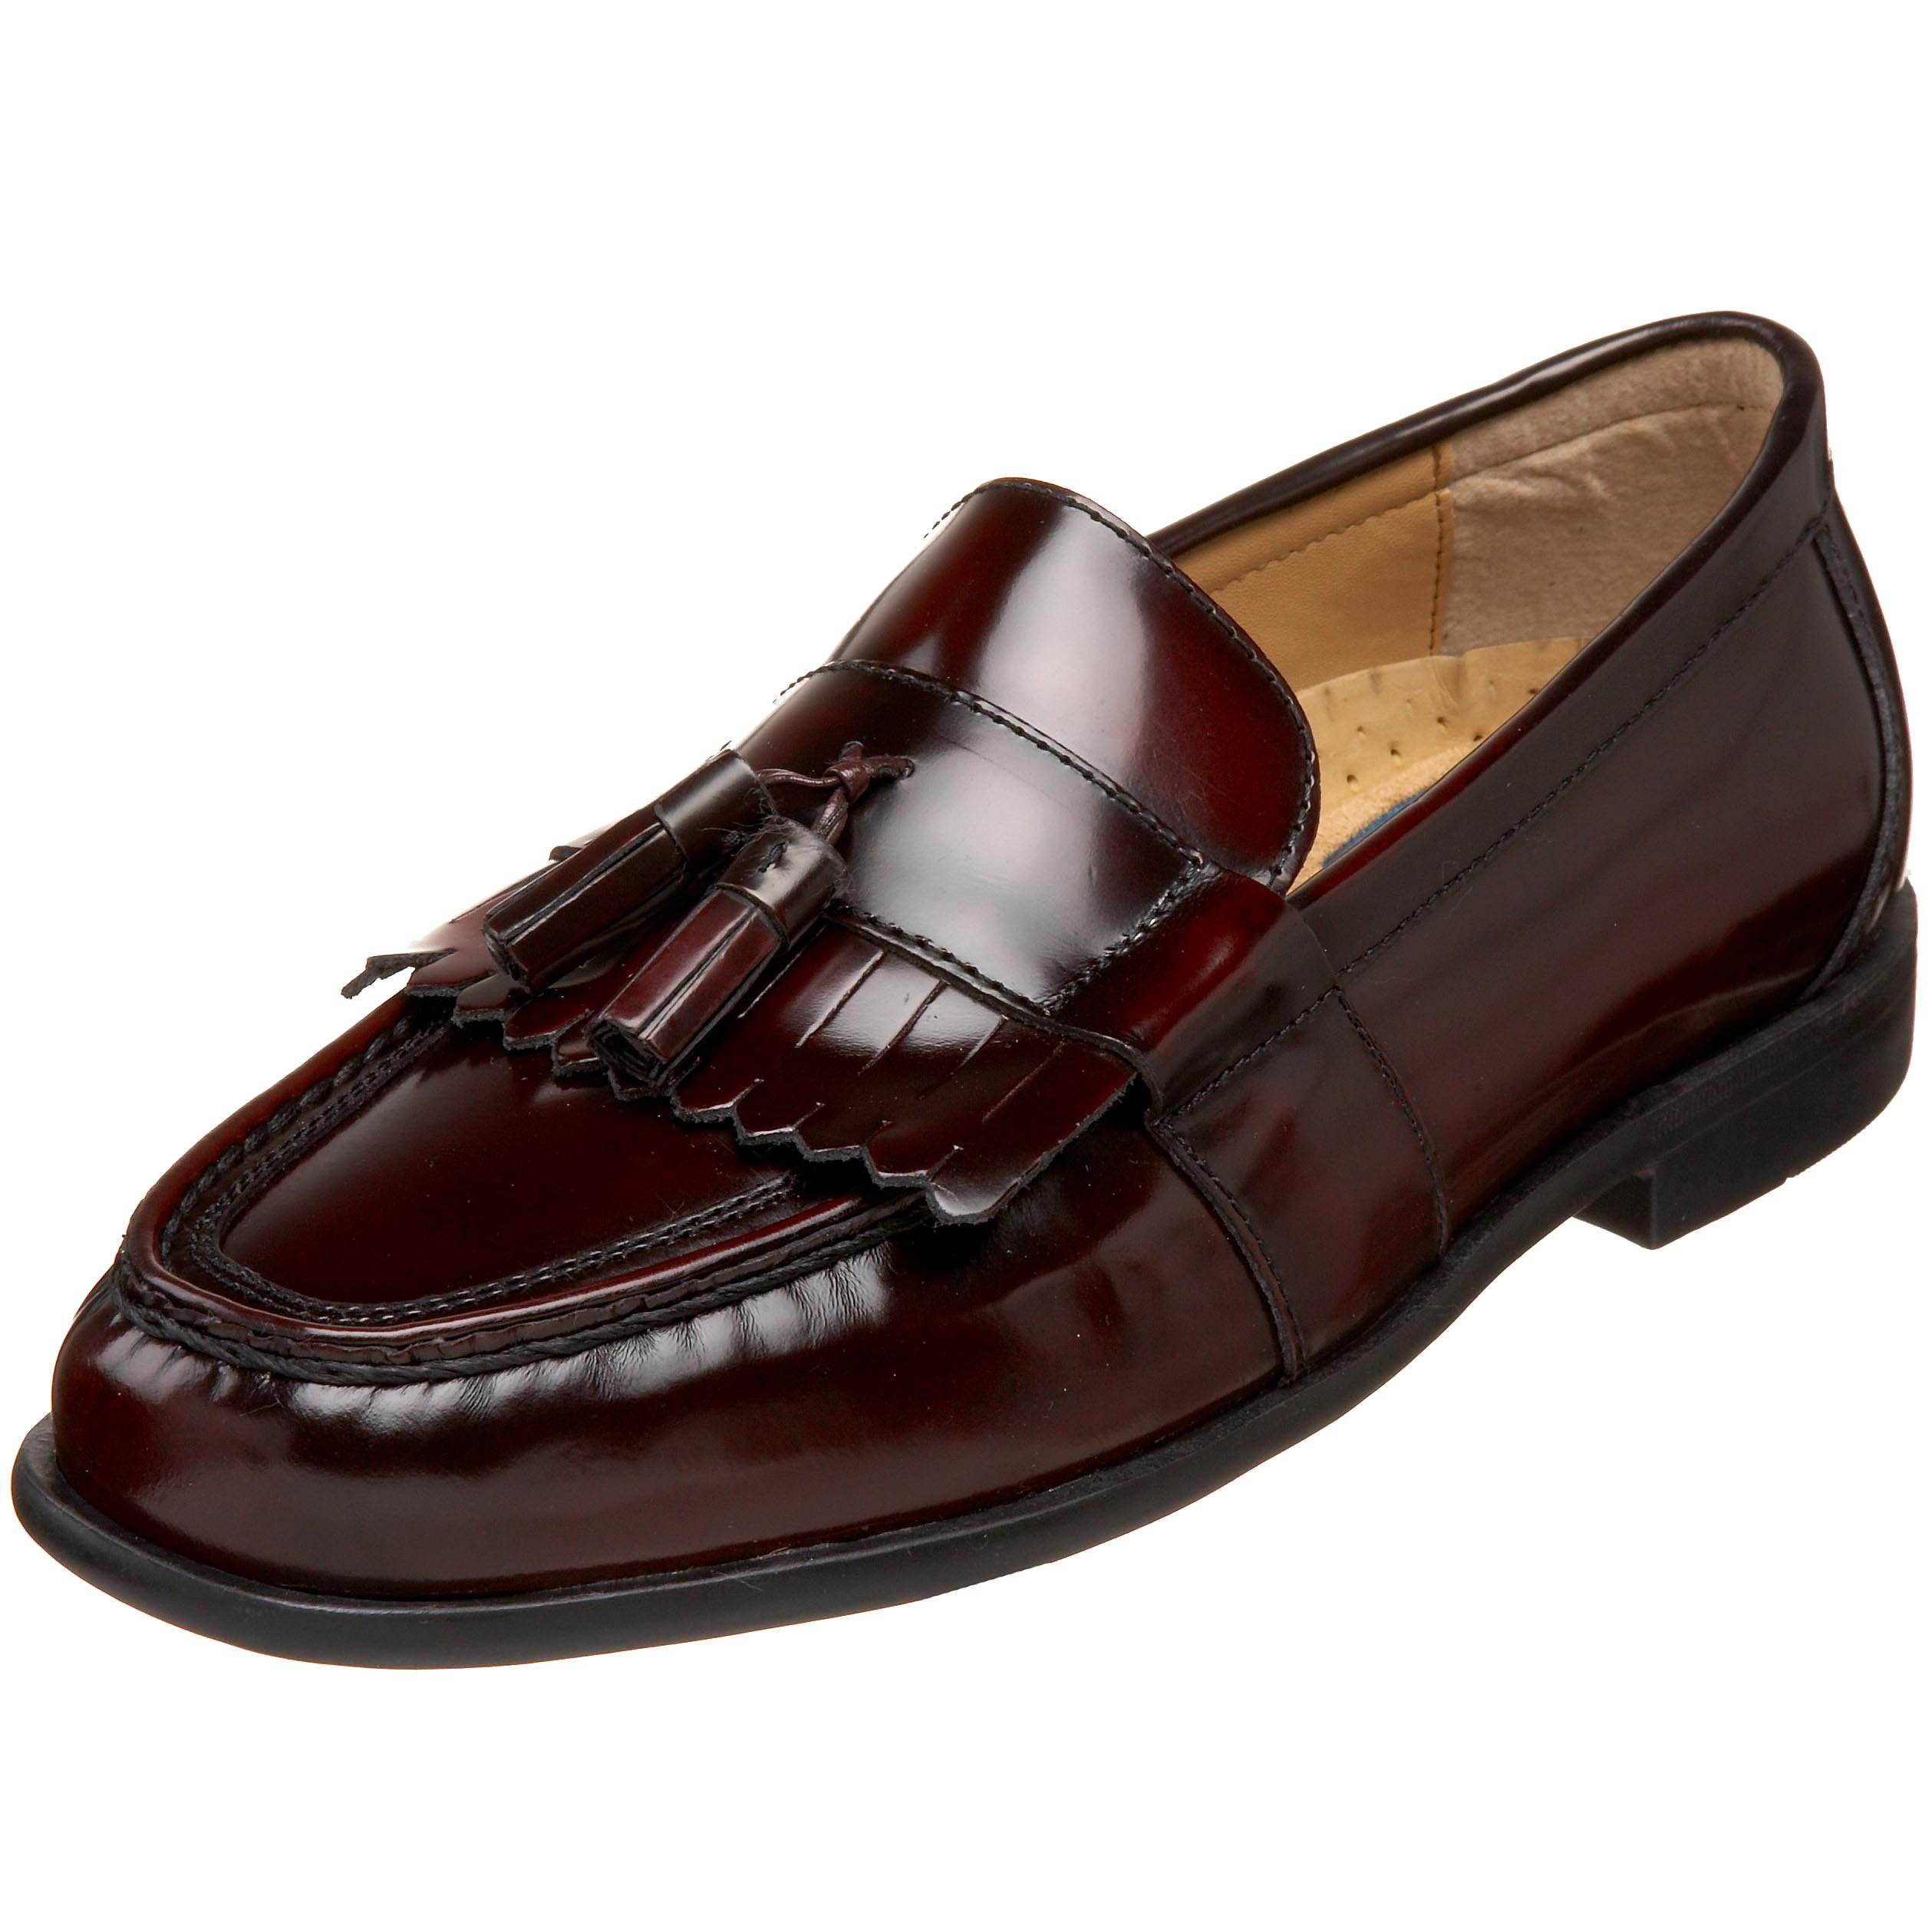 Nunn Bush Men's Keaton Slip-On Loafer,Burgundy,10 W US